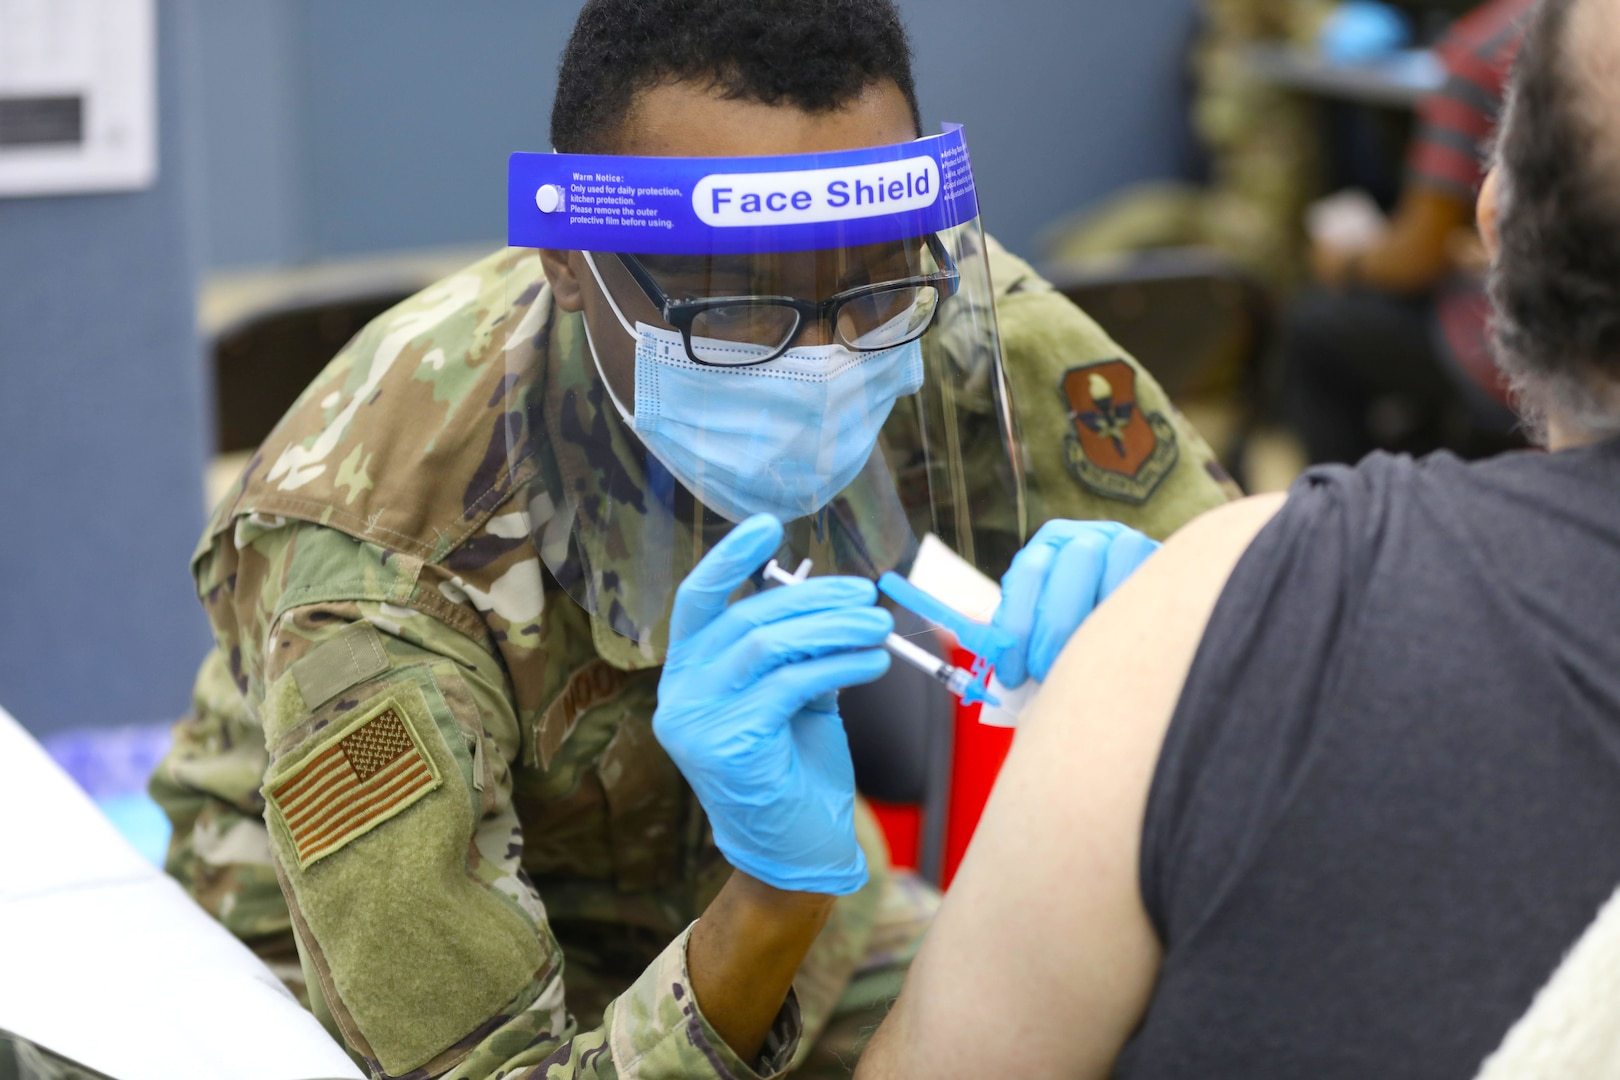 An Air Force medical technician administers the COVID-19 vaccine at a state-run, federally-supported COVID-19 Community Vaccination Center.